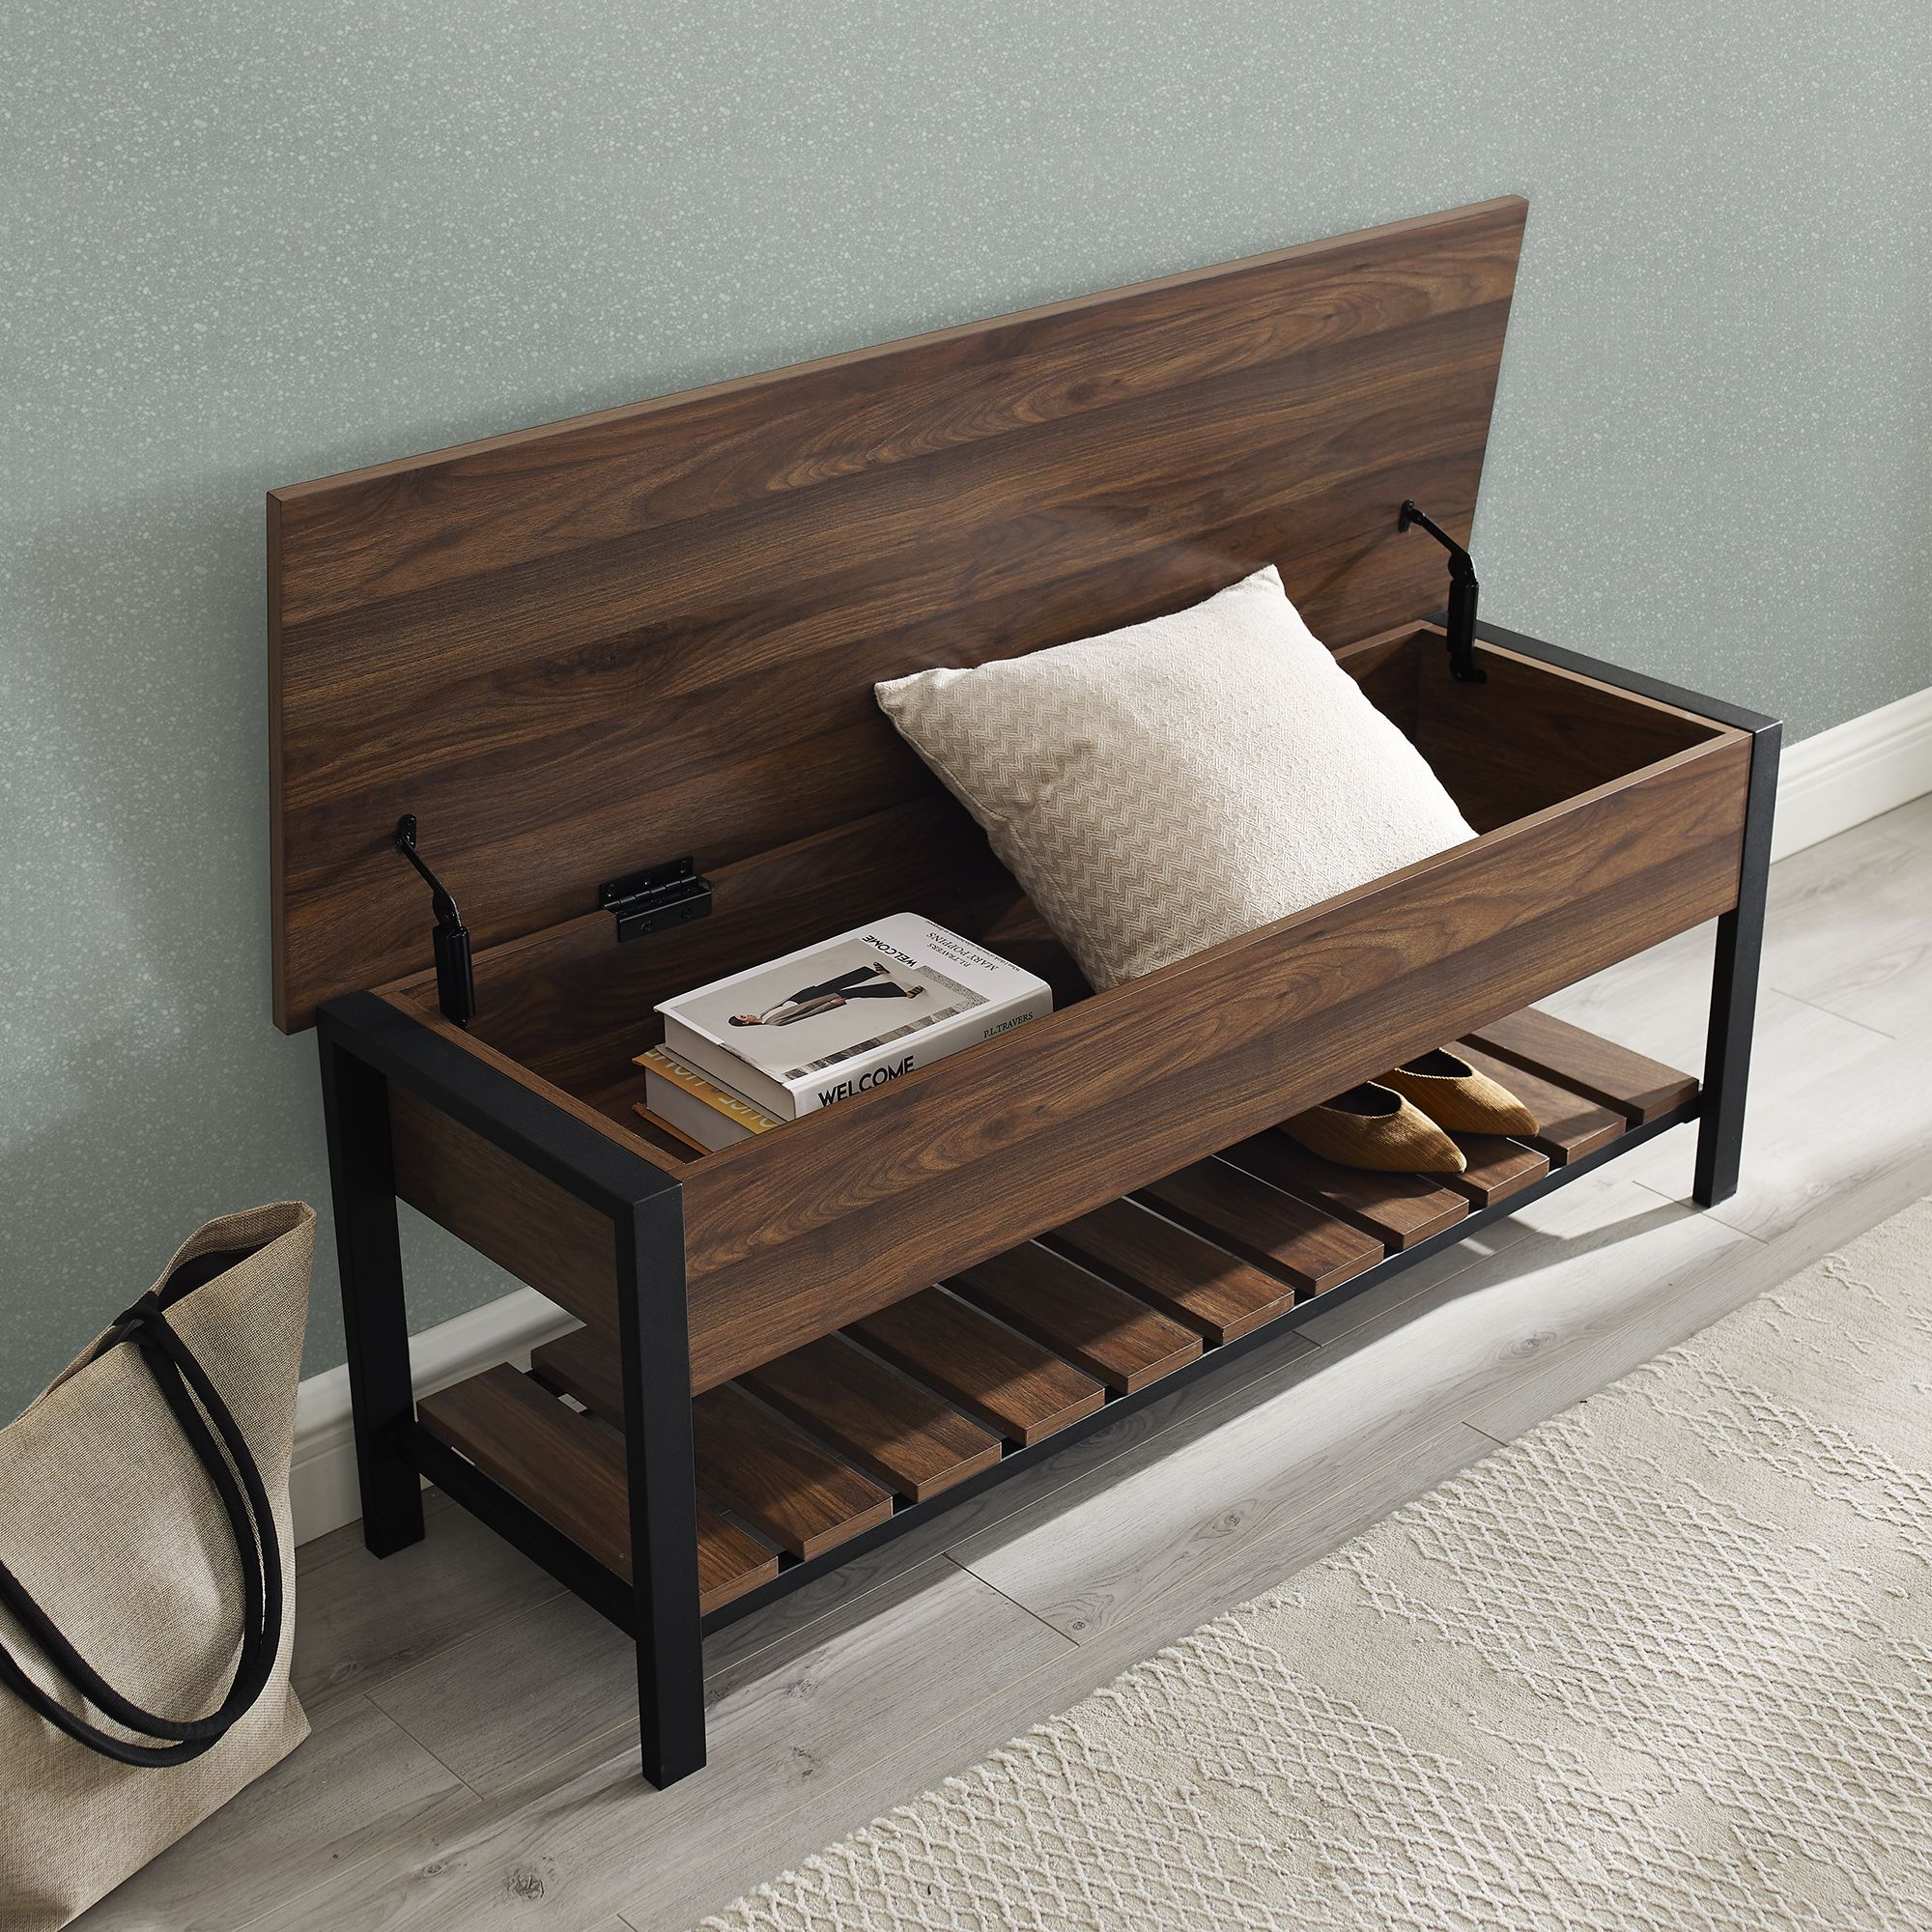 Manor Park Modern Farmhouse Storage Bench with Shoe Shelf